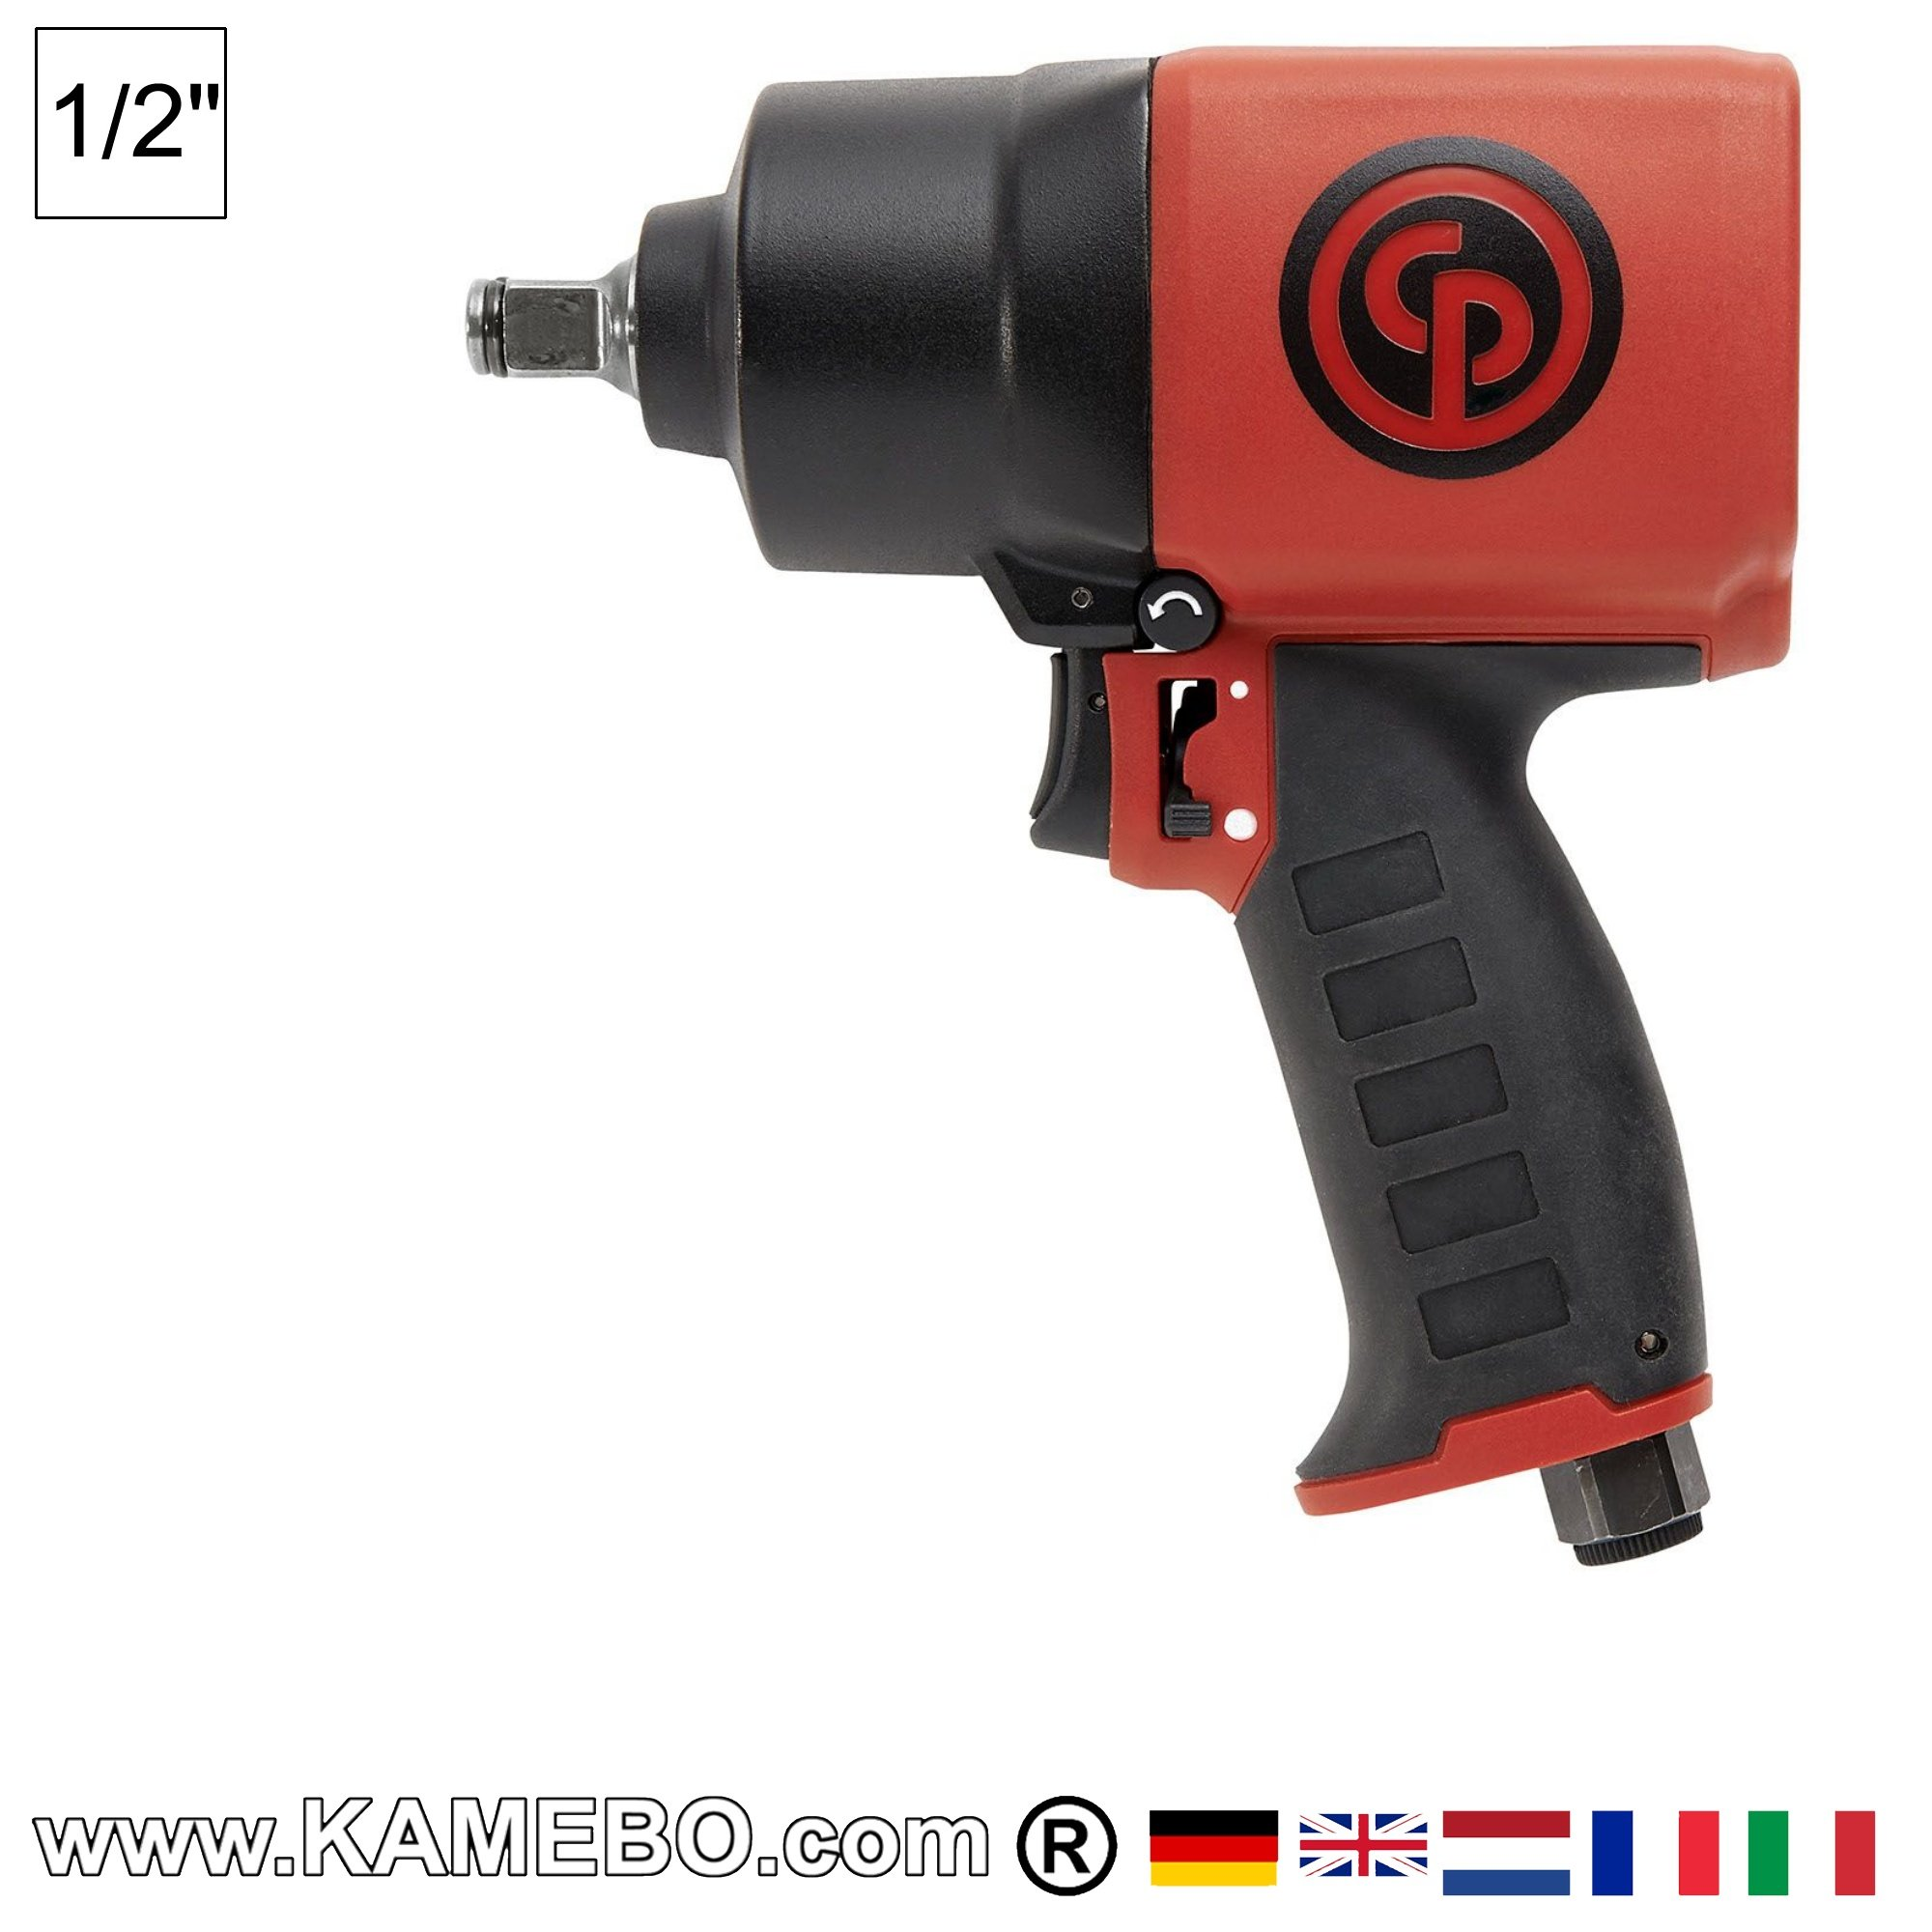 CP7749-2 Air Impact Wrench 1//2 in 9000 RPM Chicago Pneumatic Dr